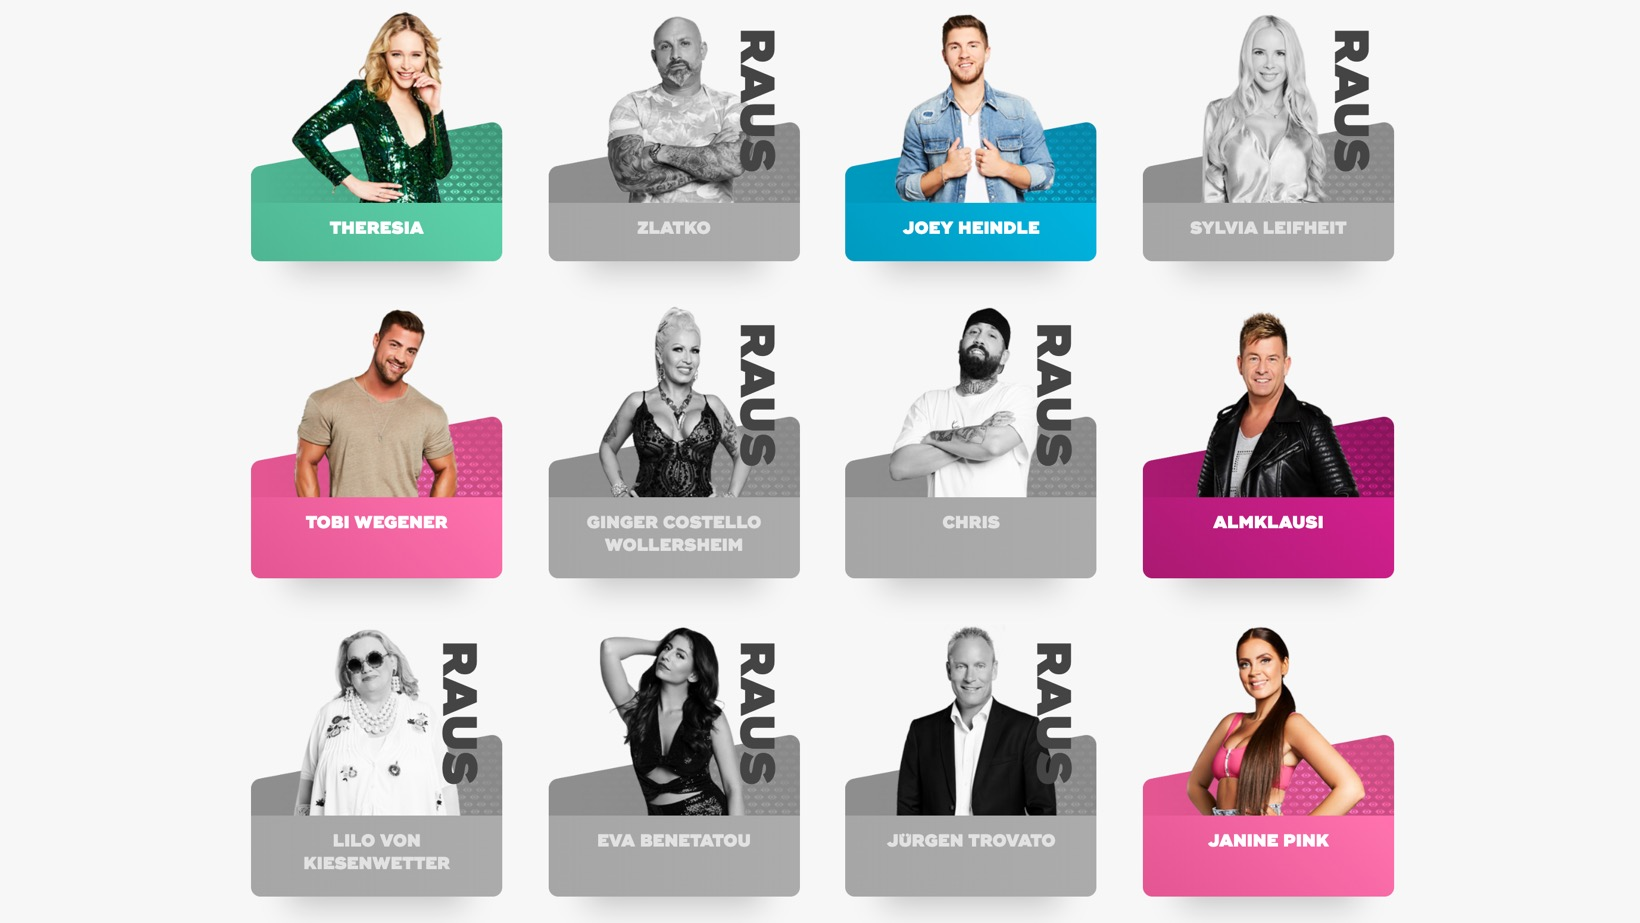 Promi Big Brother 2019 Kandidaten Halbfinale